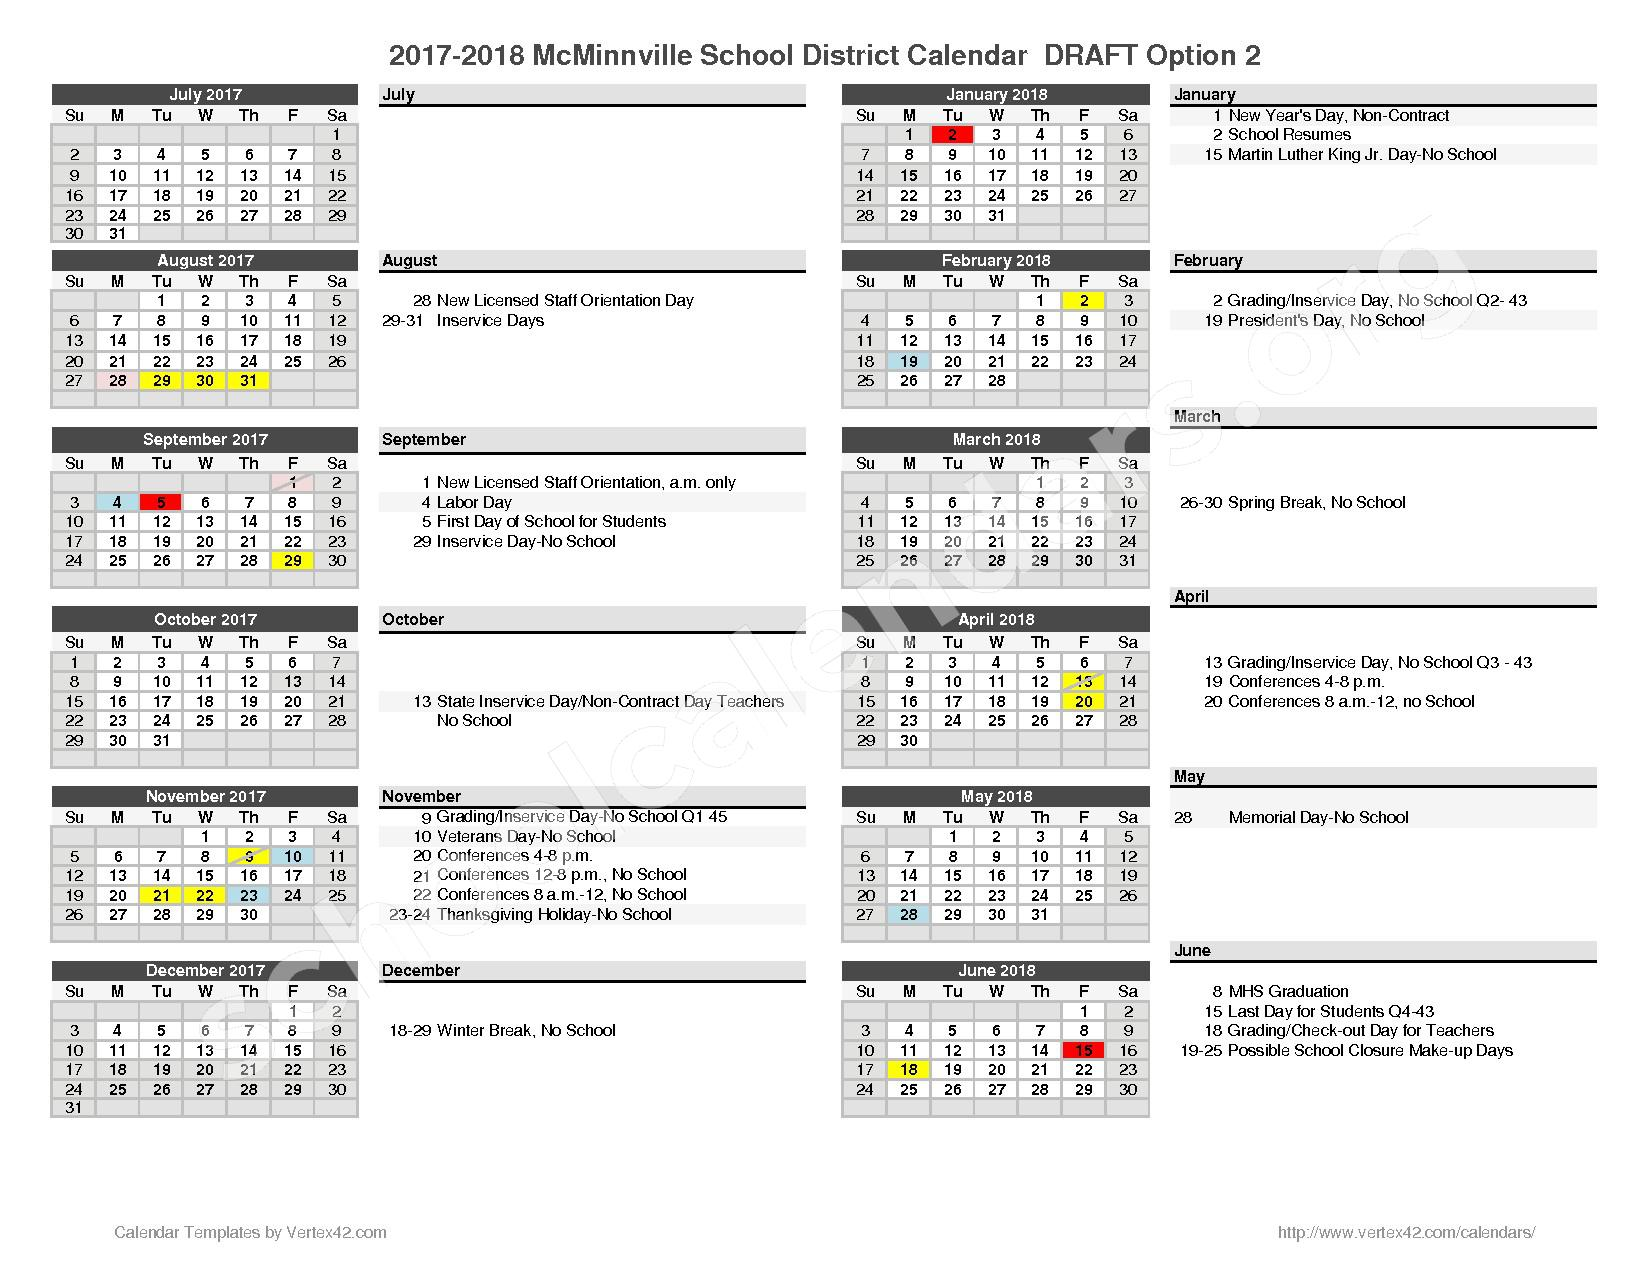 2017 - 2018 School Calendar – McMinnville School District – page 1